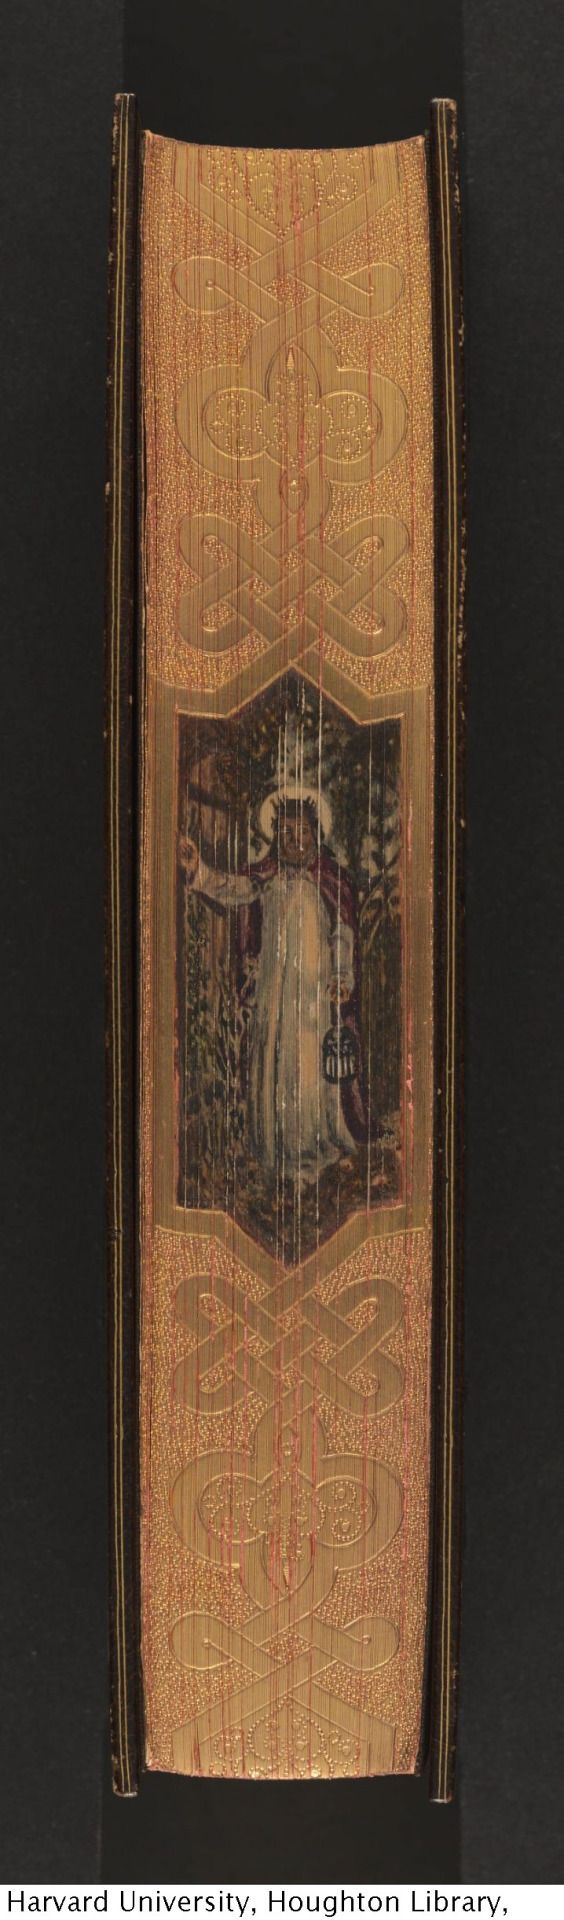 """The imitation of Christ, 1889. Bound in crushed morocco, gilt-tooled doublures, satin endpapers, by Fazakerley, edges gilt and gauffered, with fore-edge painting of Jesus based on William Holman Hunt's painting """"The Light of the World,"""" 1854."""